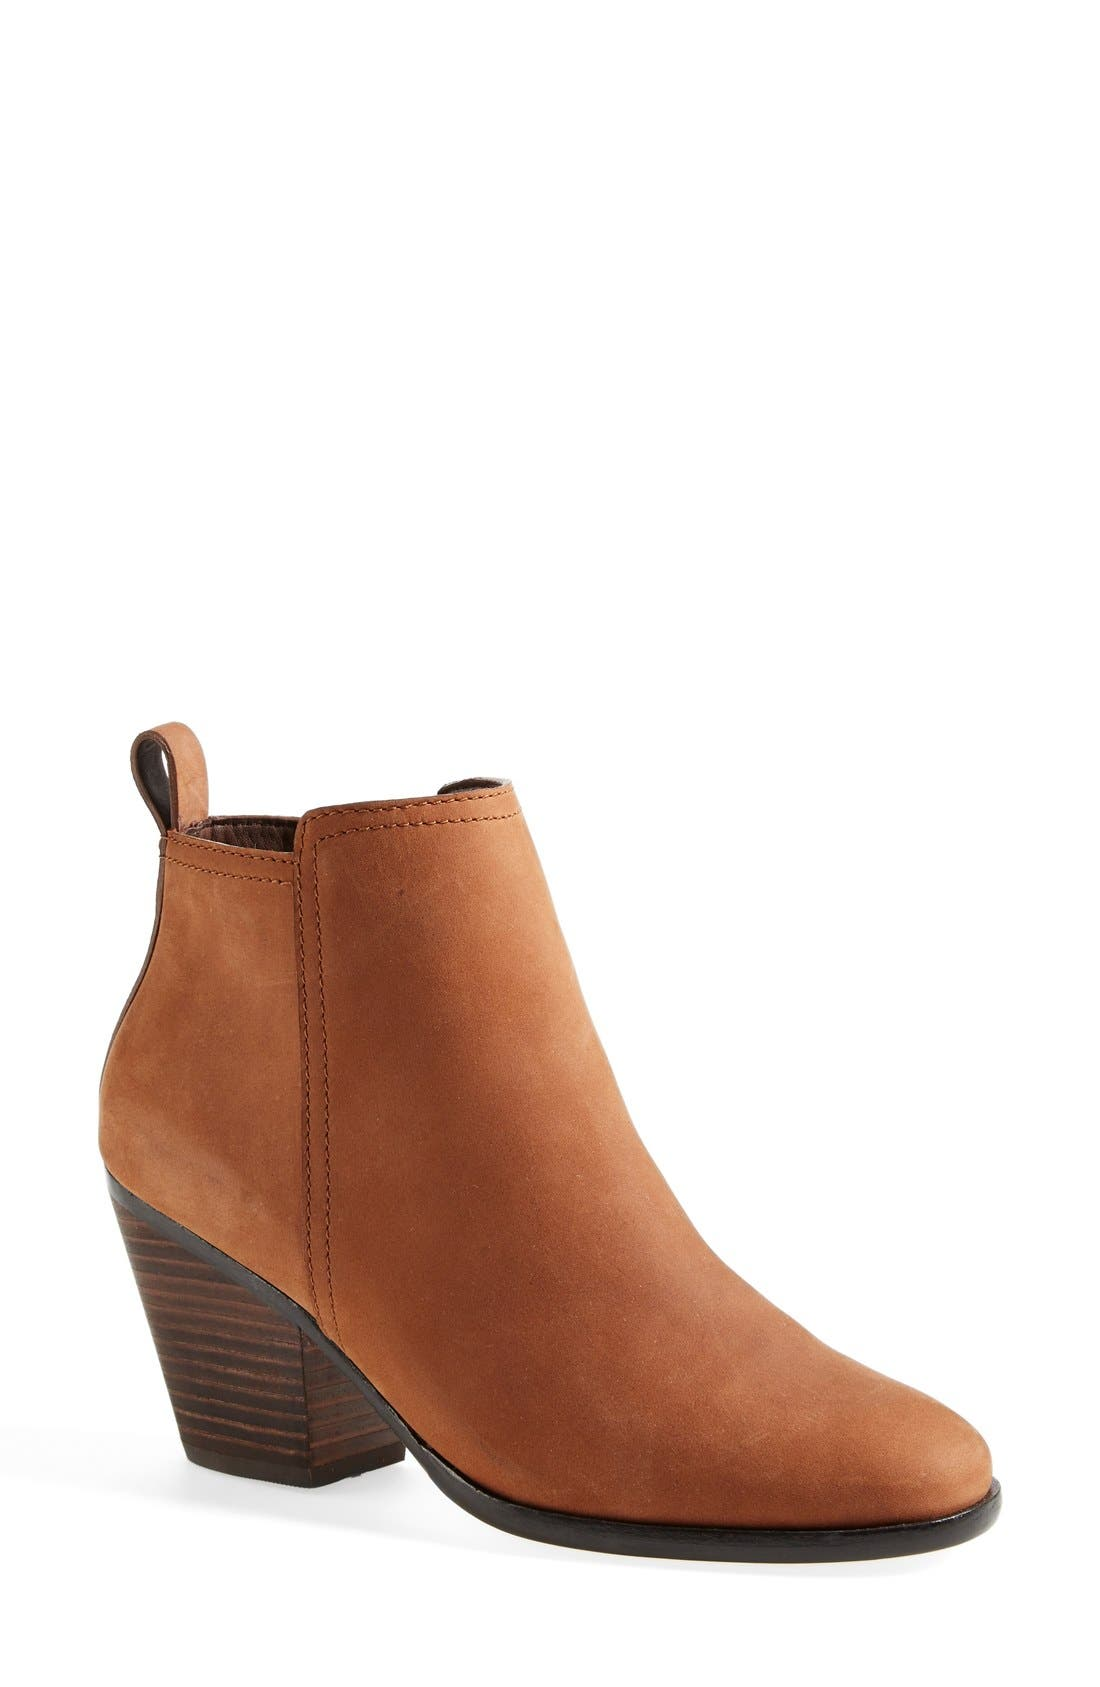 Alternate Image 1 Selected - Cole Haan 'Chesney' Round Toe Bootie (Women)